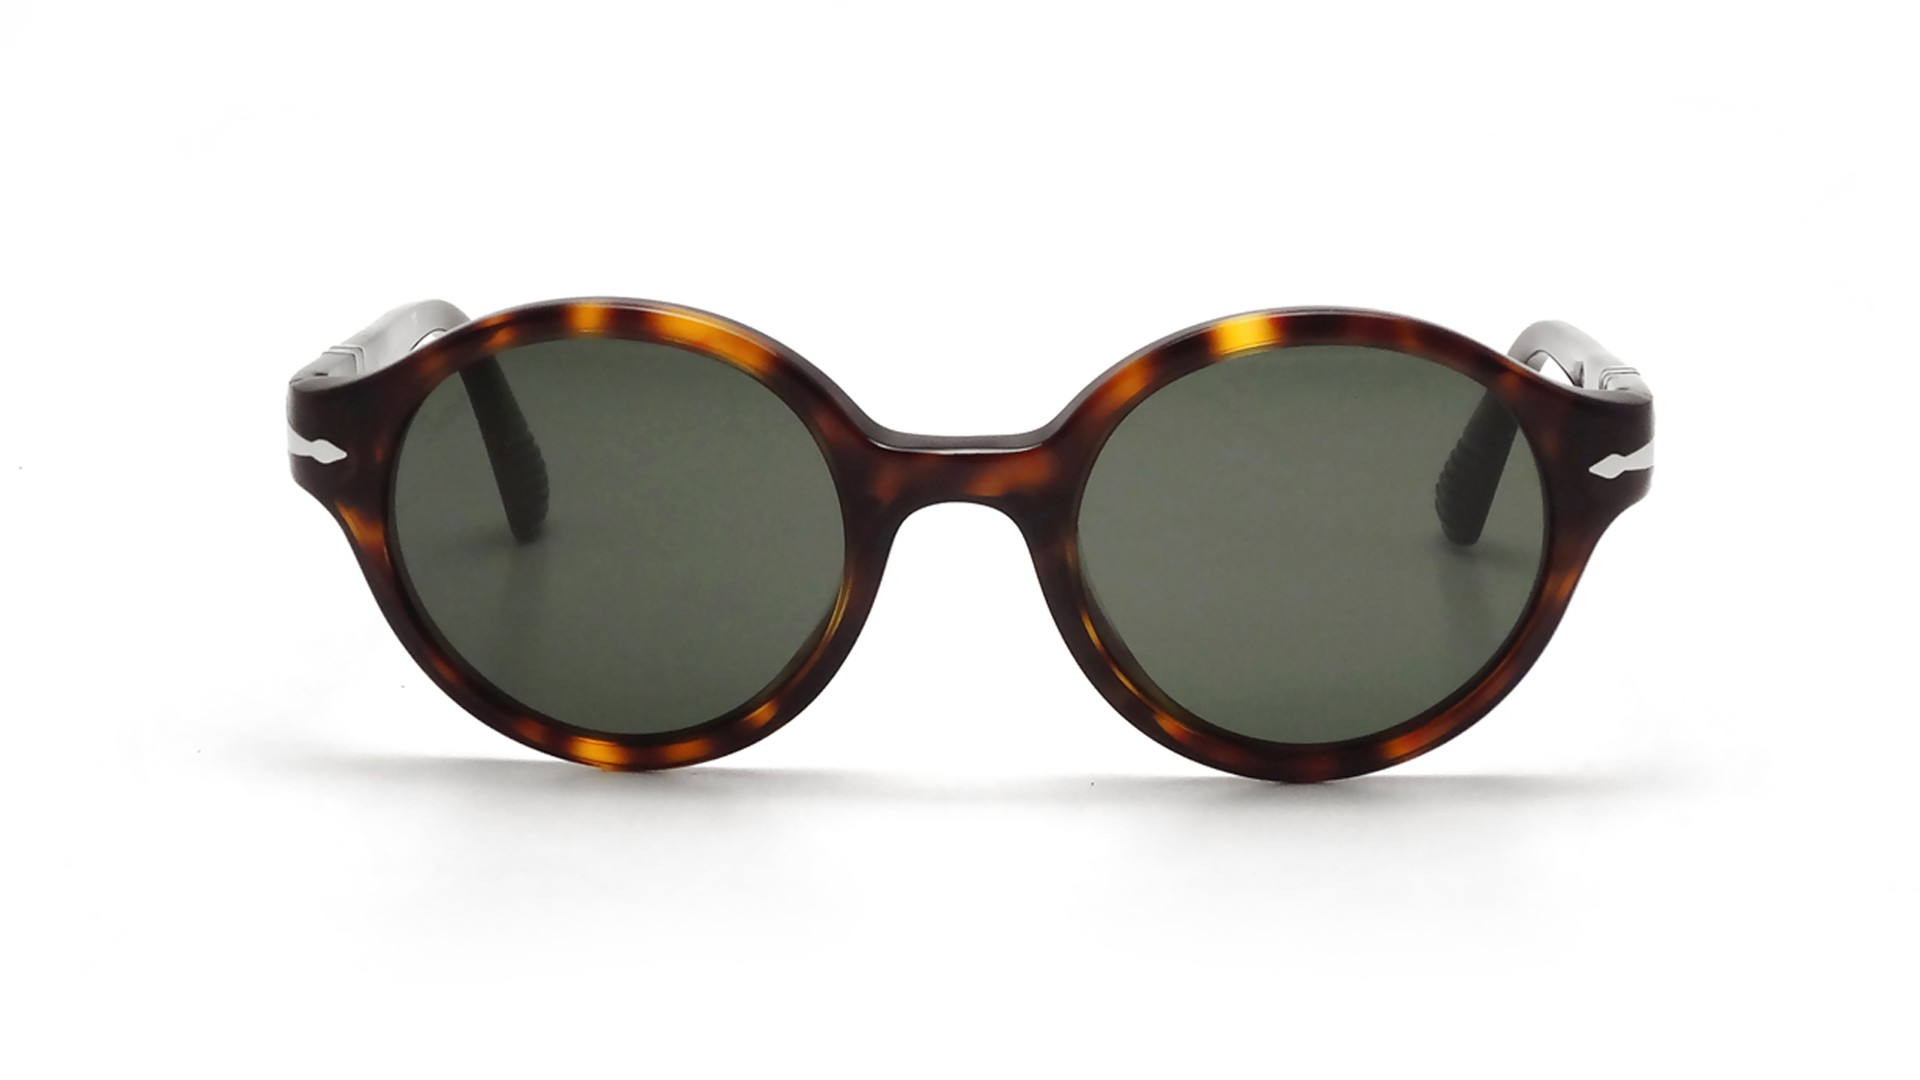 66cd41f7dc03 Persol suprema film noir / Shopping bourbon country cinema poa